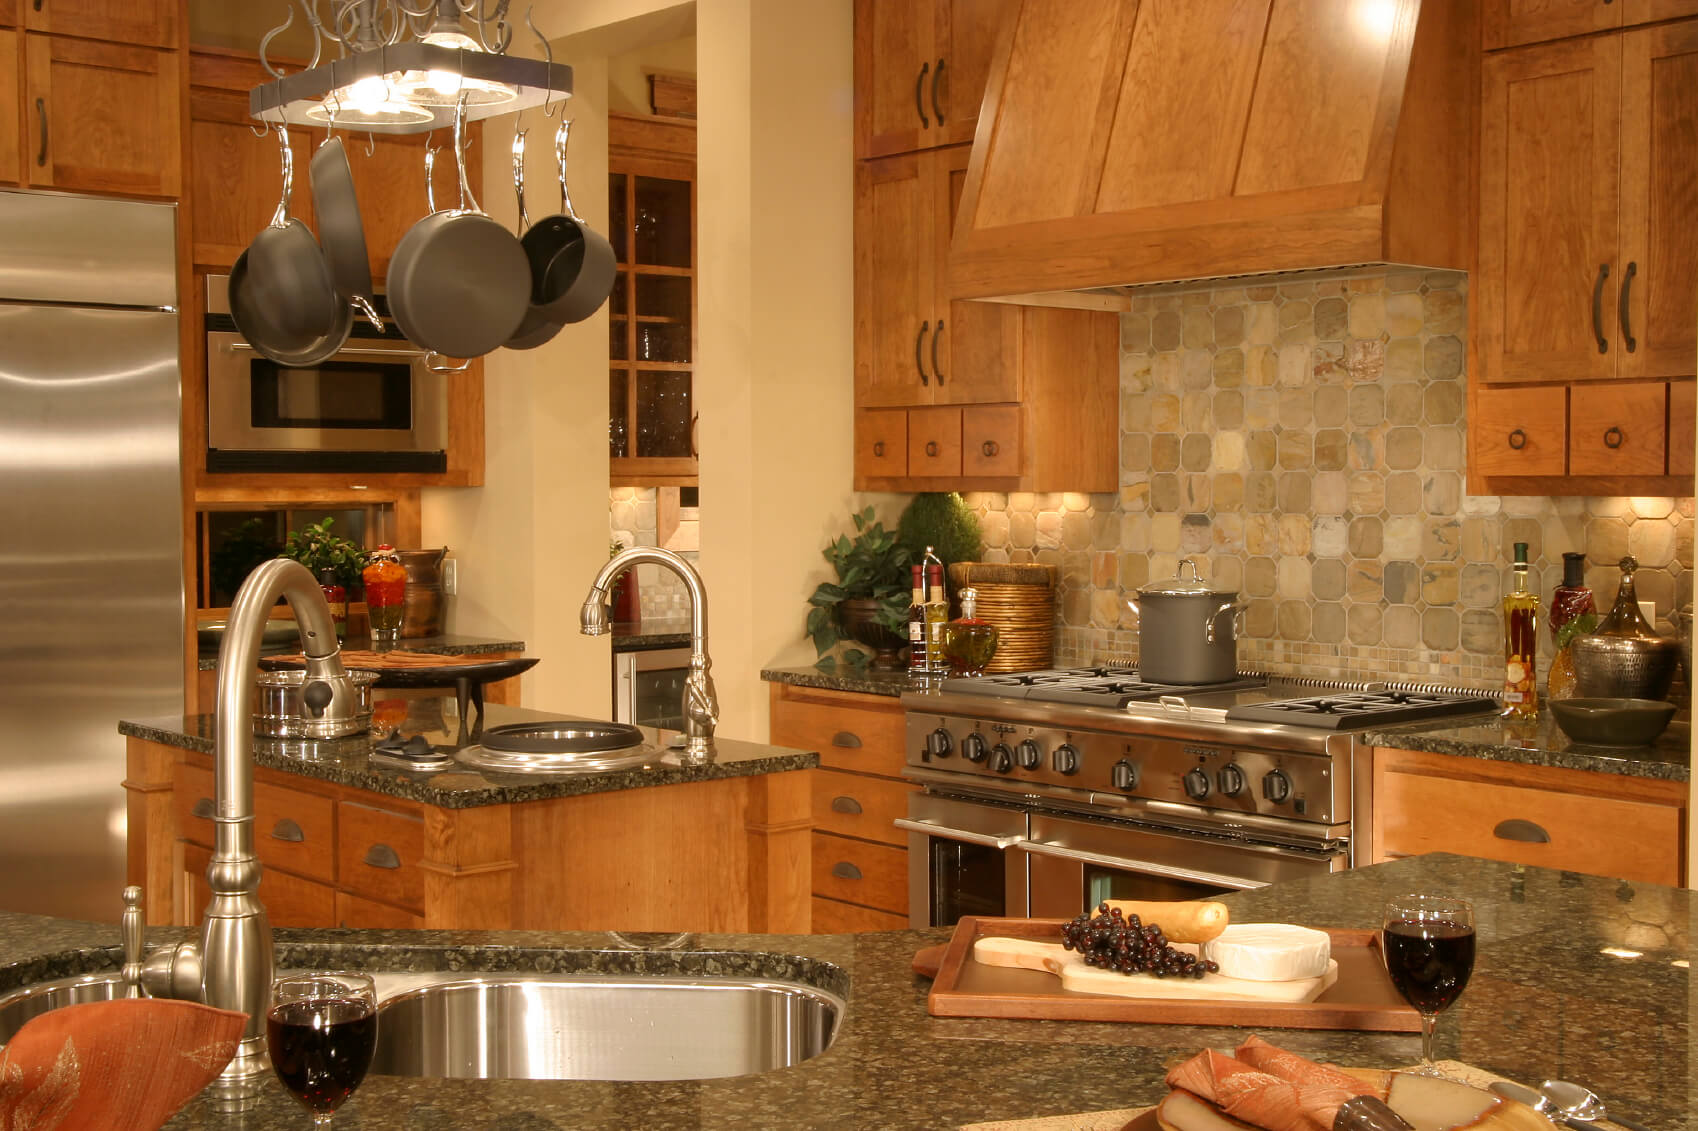 48 luxury dream kitchen designs worth every penny photos - Luxury kitchen designs photo gallery ...